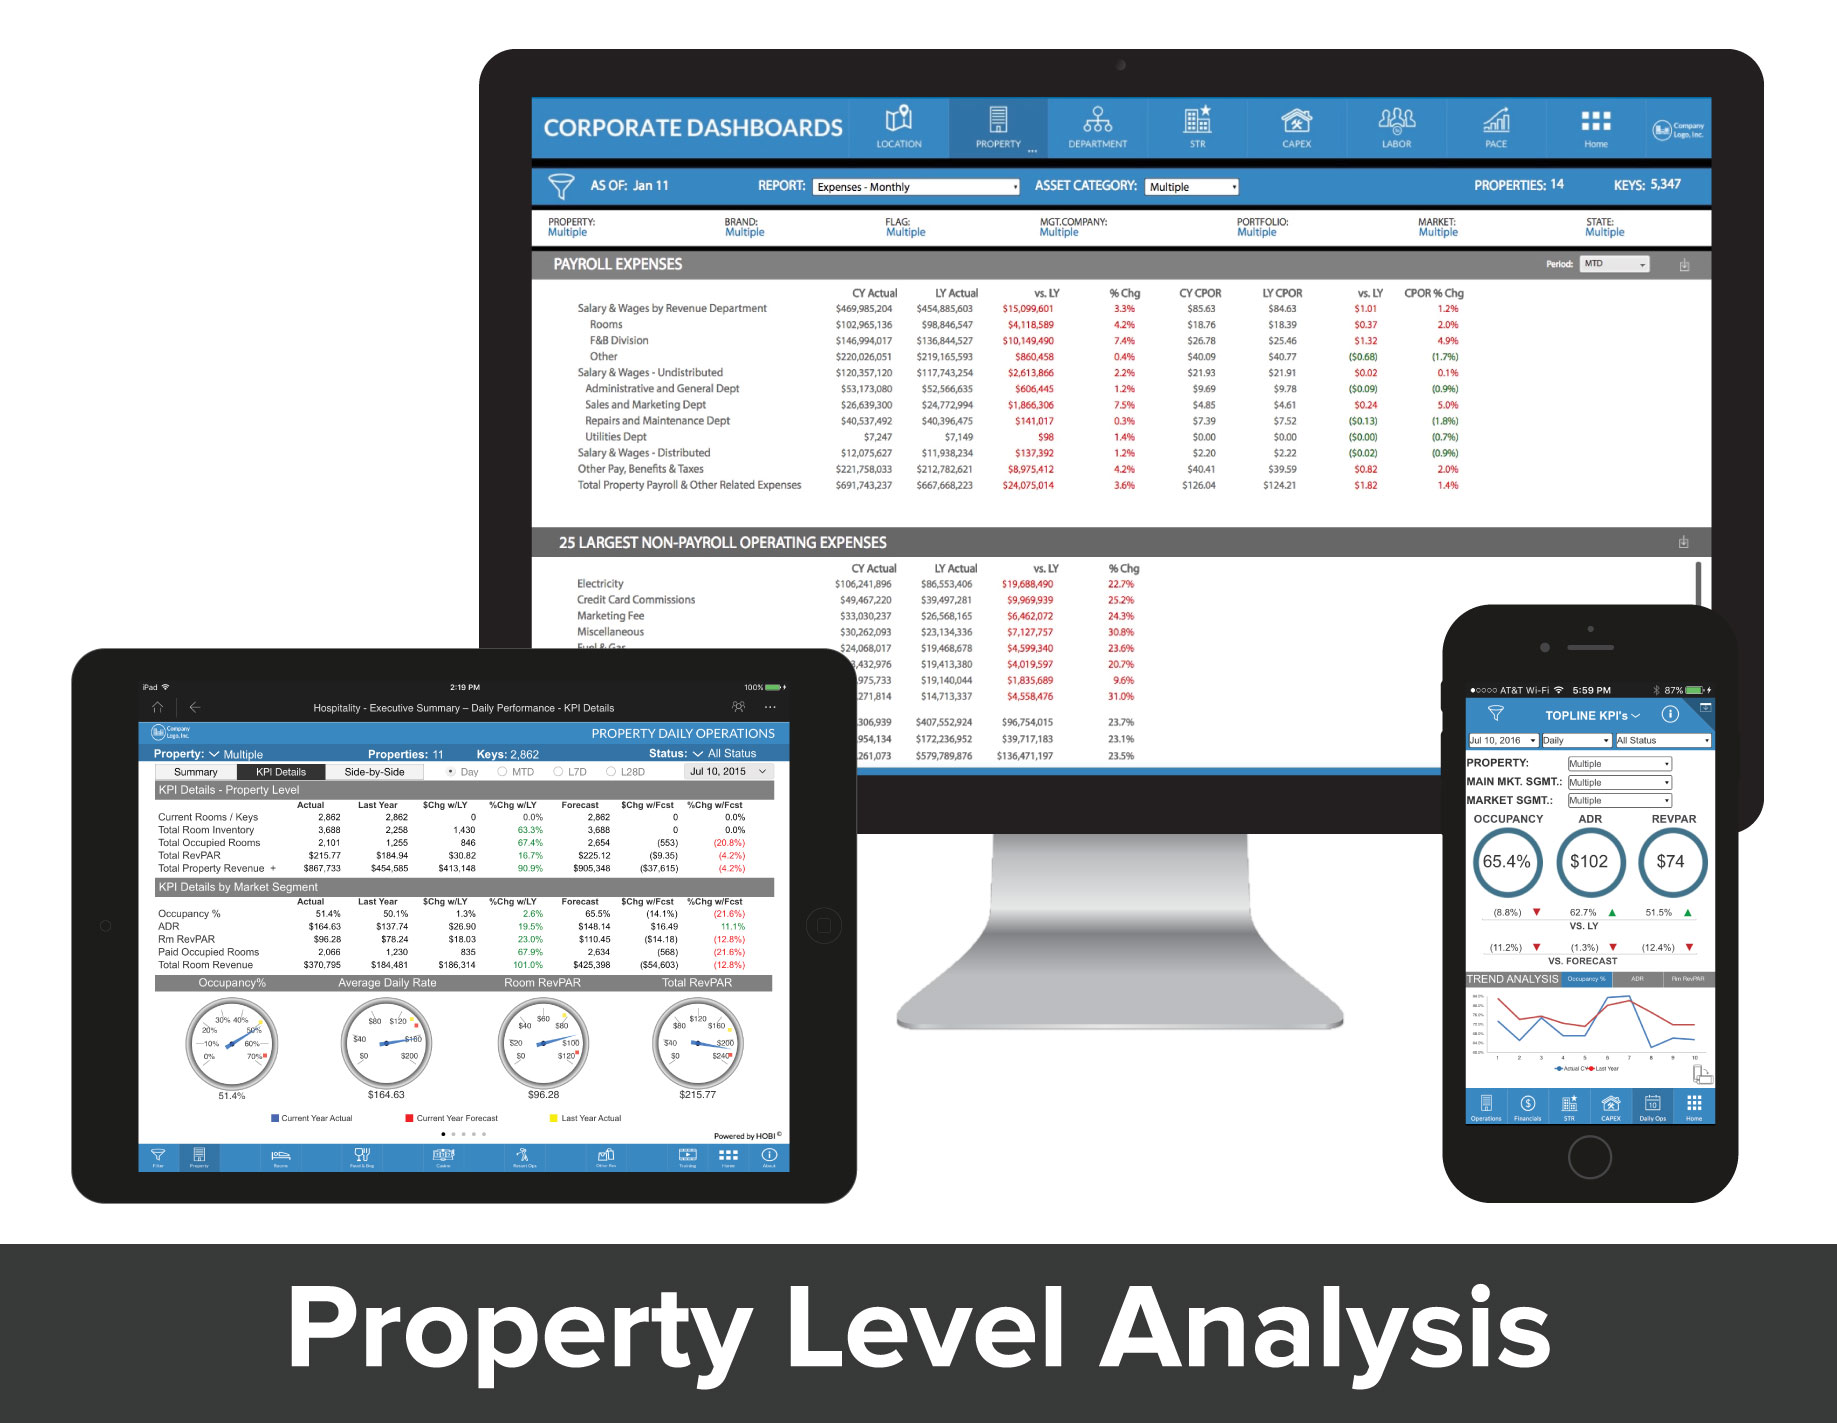 Gallery_3_Property-Level-Analysis.jpg